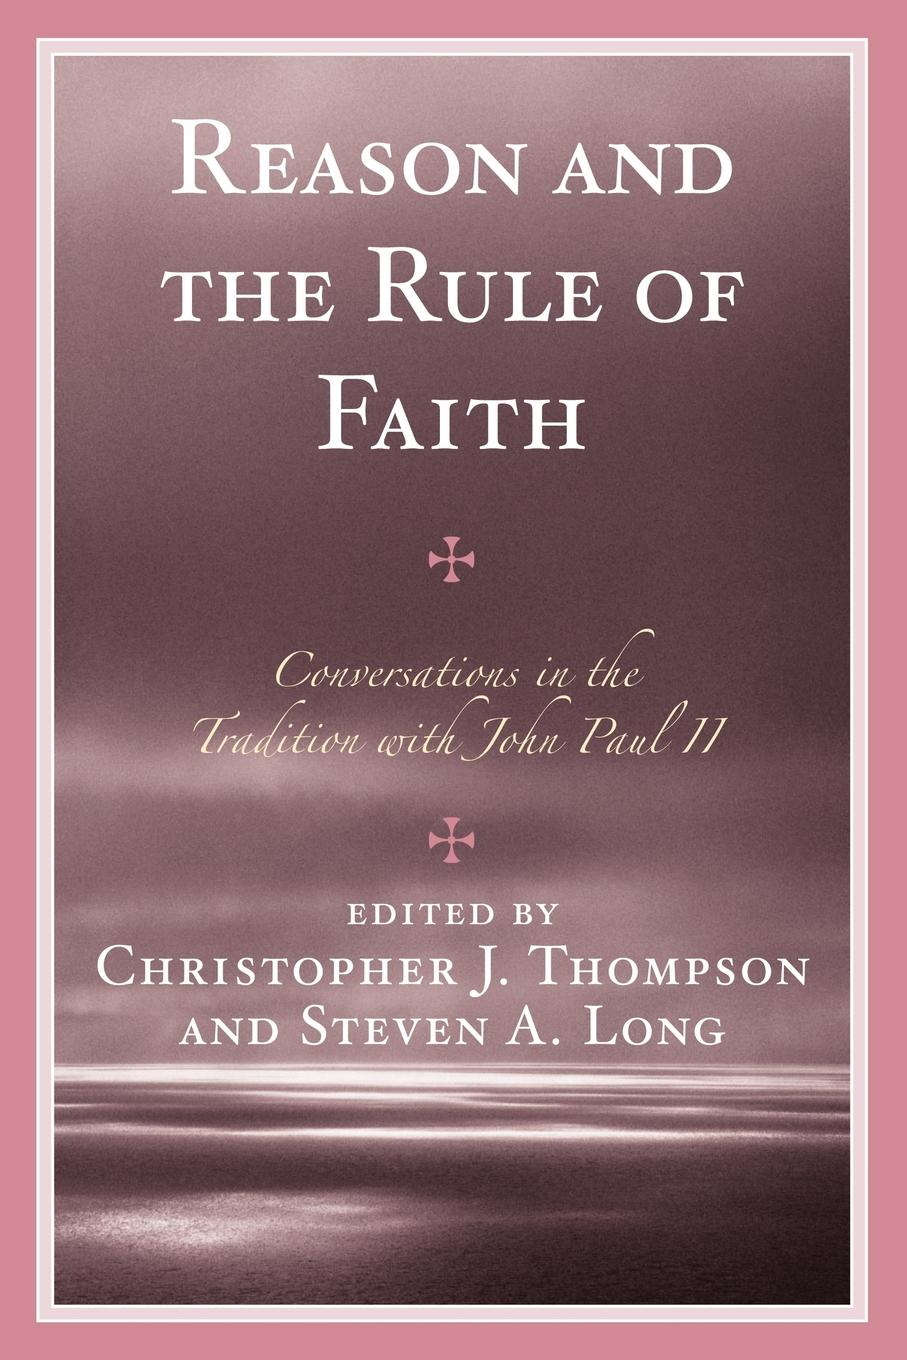 Reason and the Rule of Faith Conversations in the Tradition with John Paul II